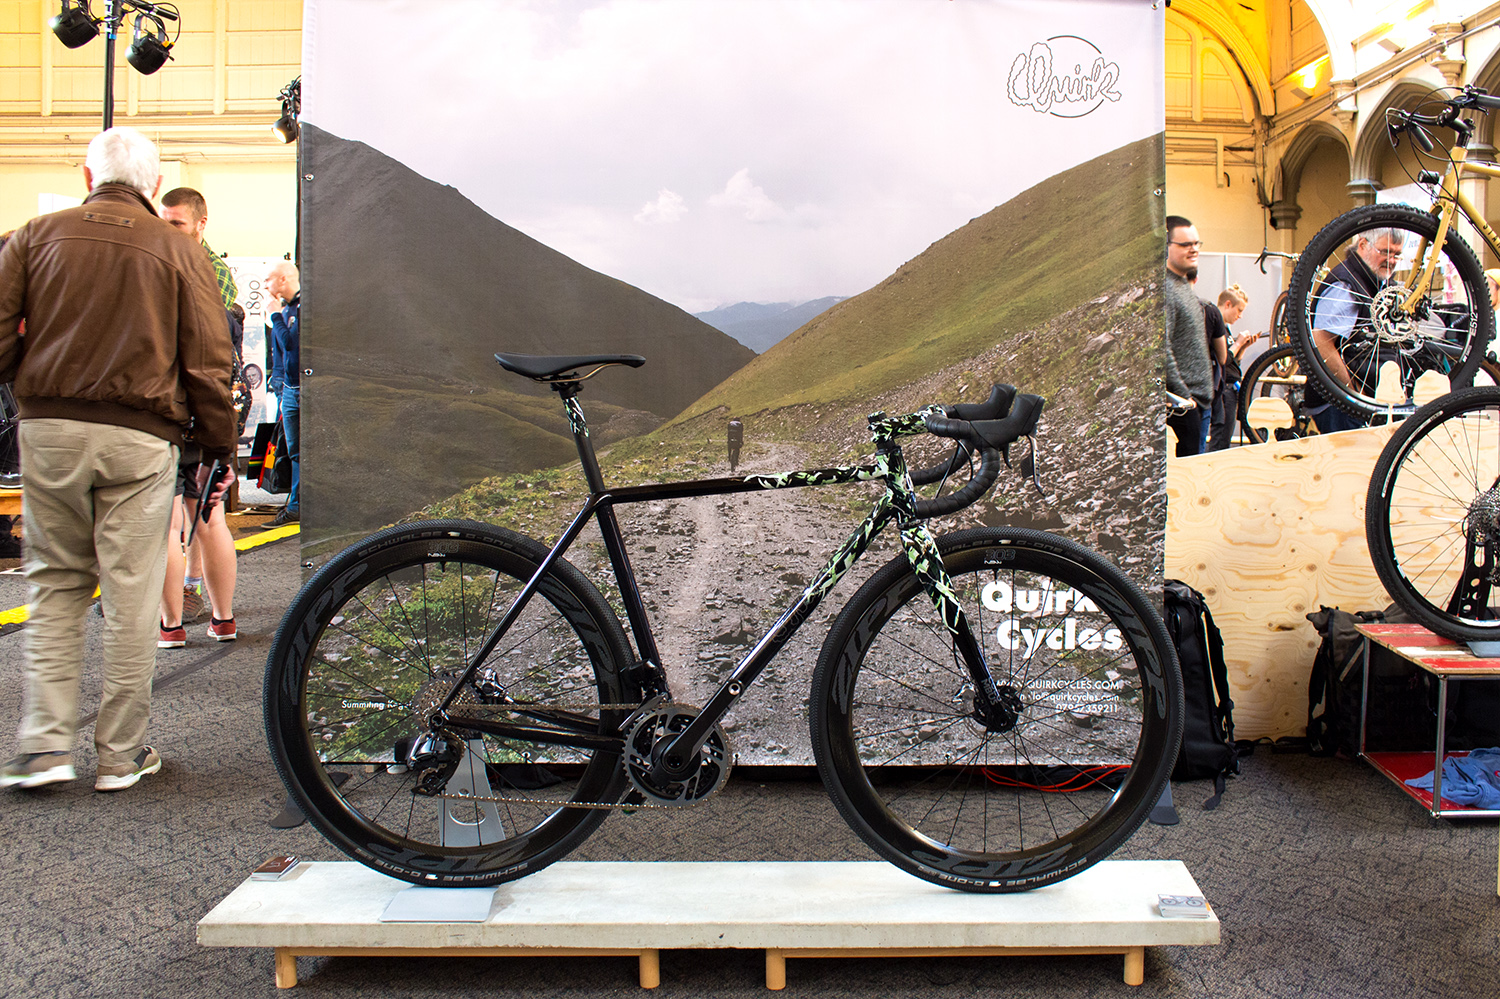 quirk_cycles_sram_bespoked_build_09.jpg